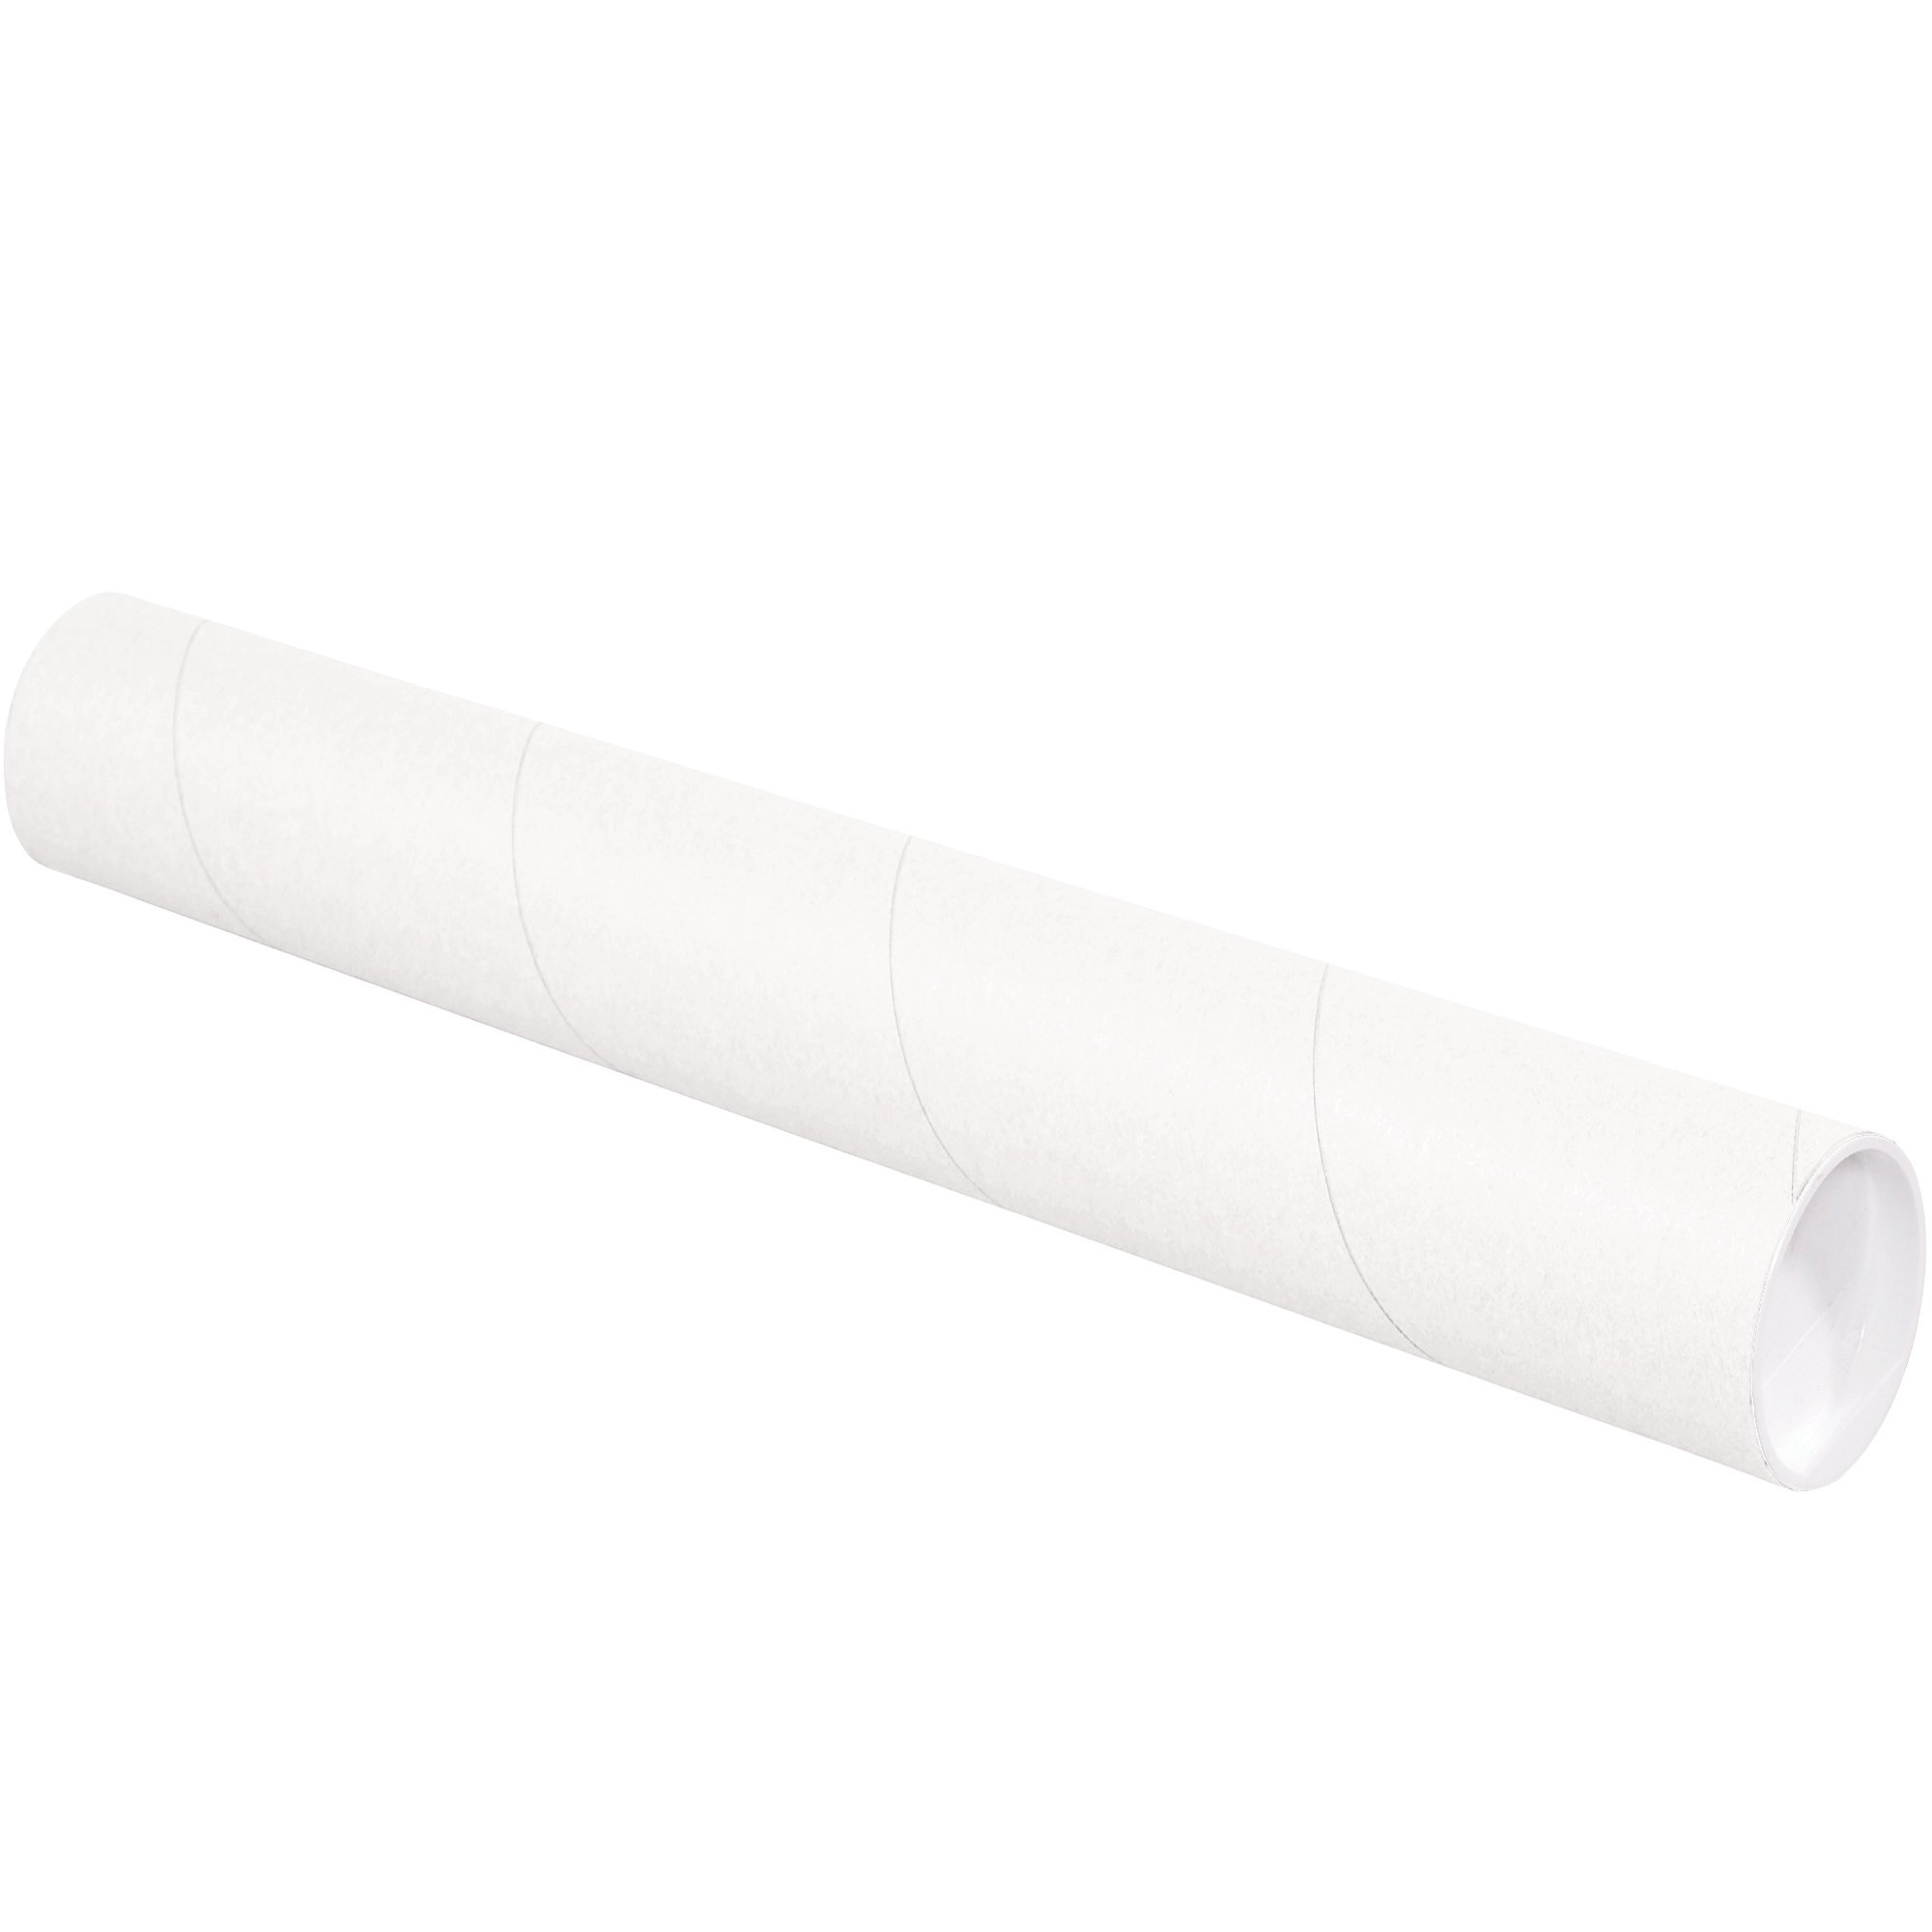 Mailing Tubes with Caps, 3'' x 18'', White, 24/Case by Great Box Supply